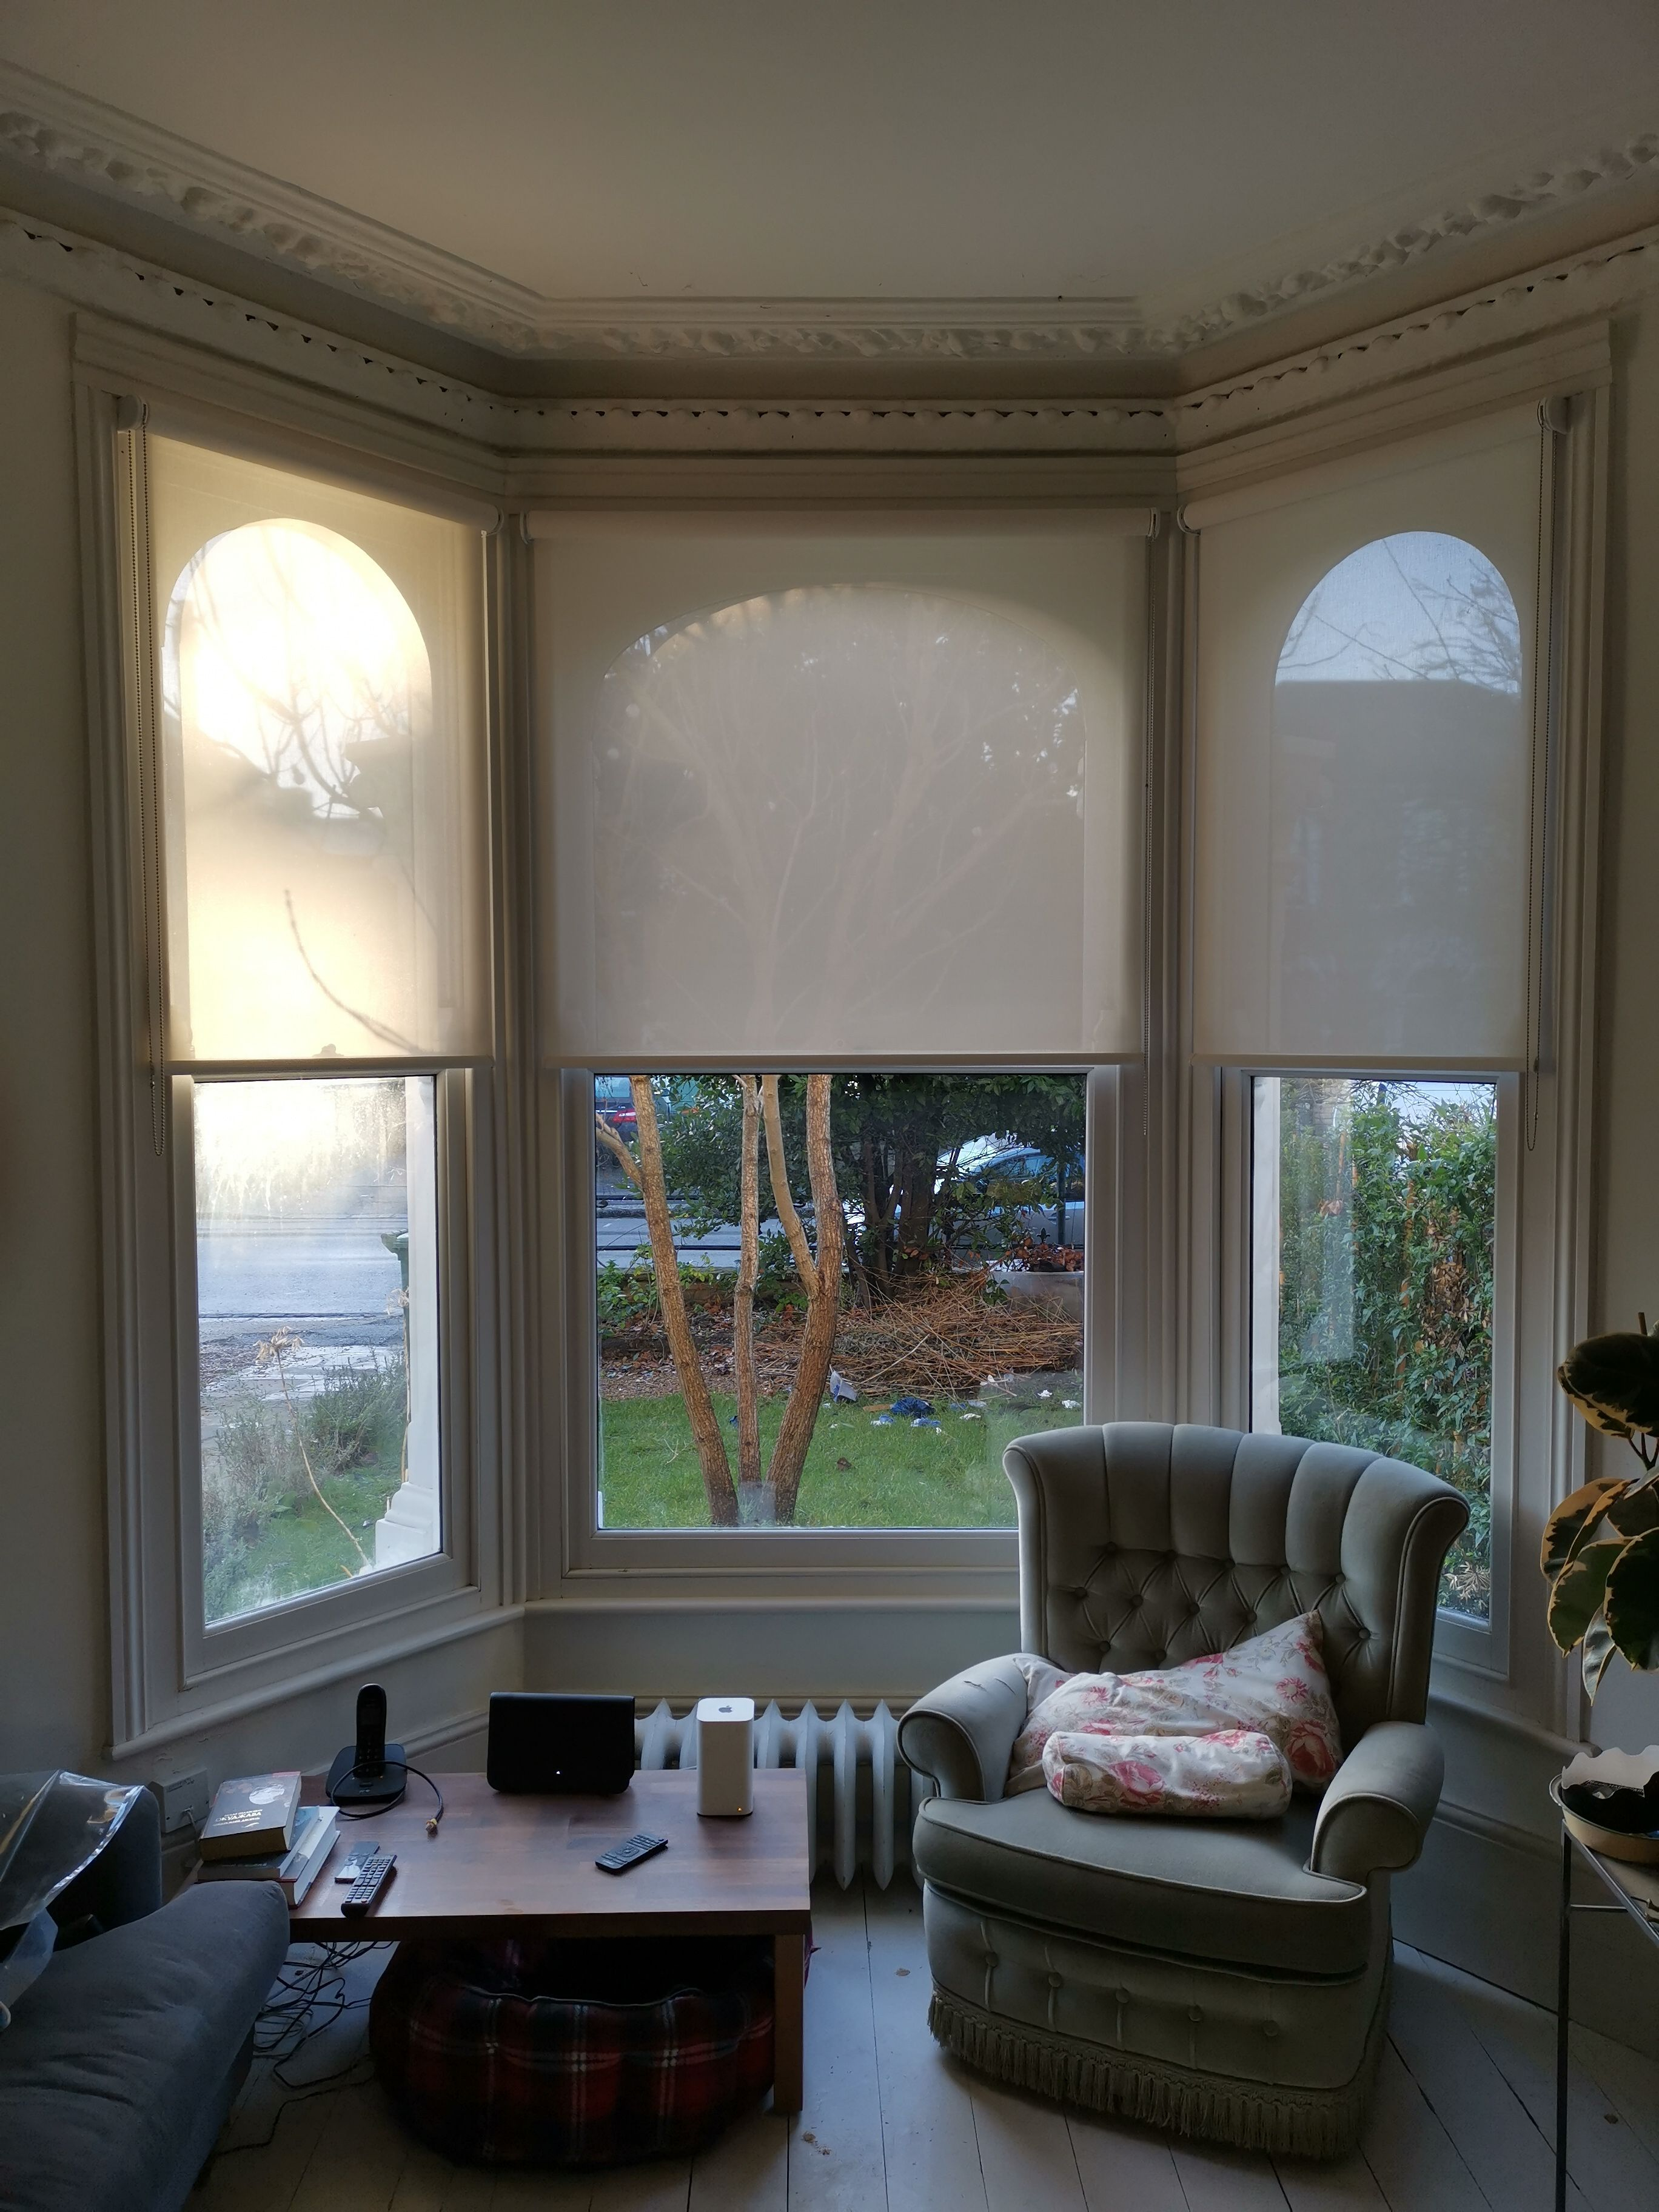 Sunscreen Roller Blinds For Bay Window In Living Room Arched